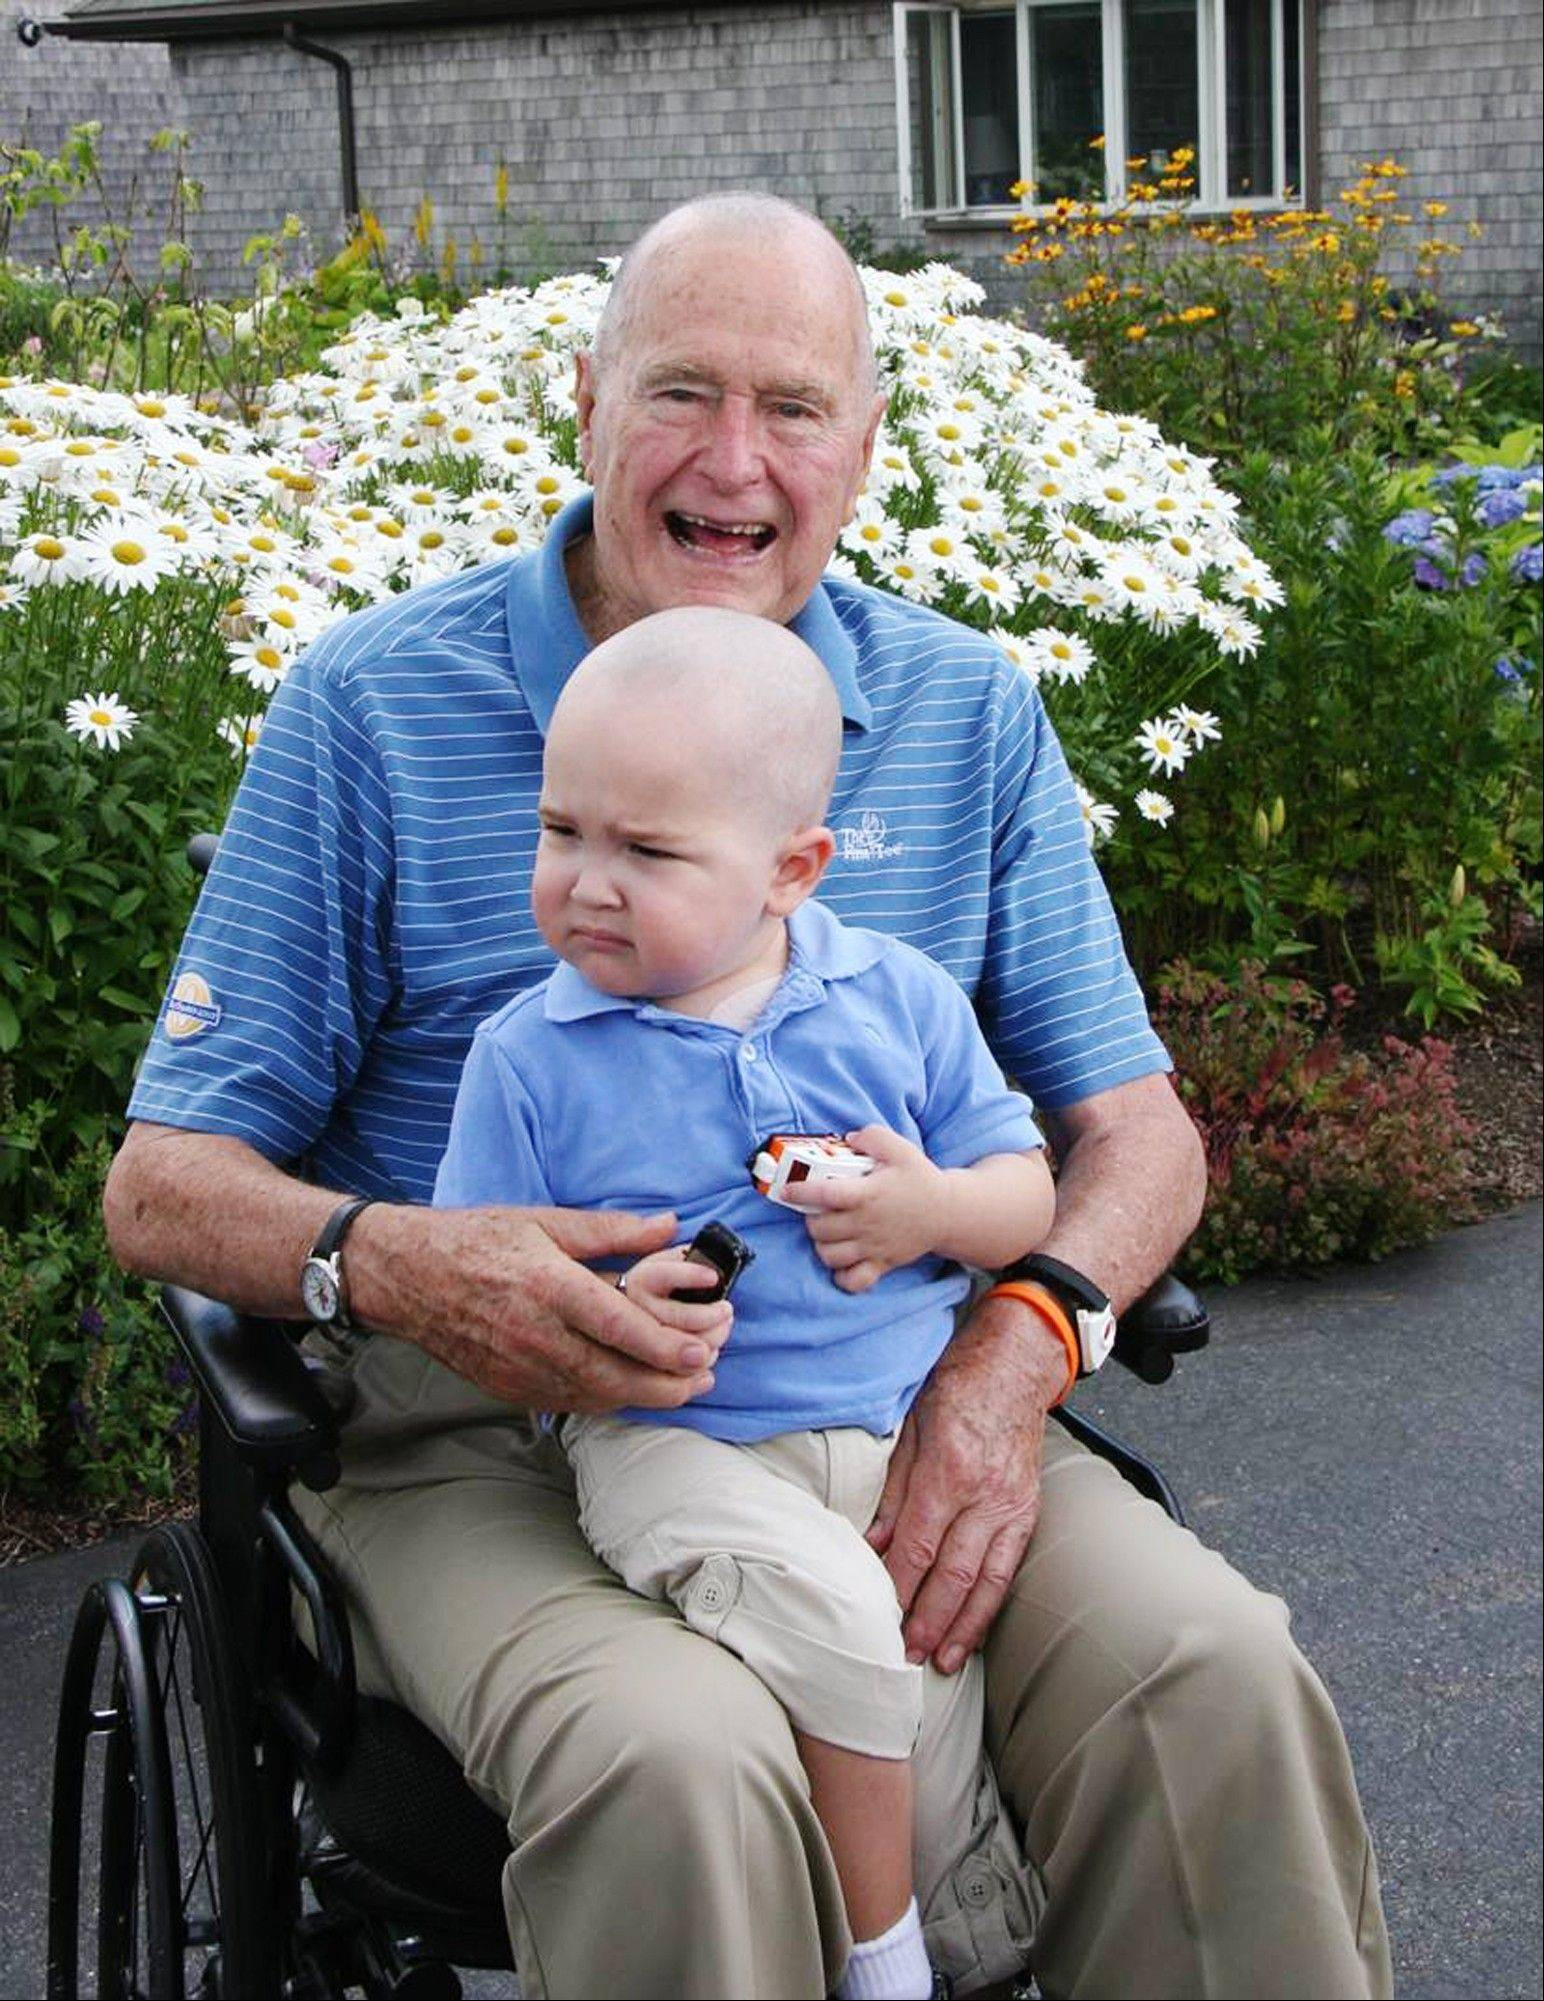 President George H.W. Bush poses with 2-year-old Patrick, last name withheld at family�s request, in Kennebunkport, Maine. Bush this week joined members of his Secret Service detail in shaving his head to show solidarity for Patrick, who is the son of one of the agents. The child is undergoing treatment for leukemia and is losing his hair as a result.